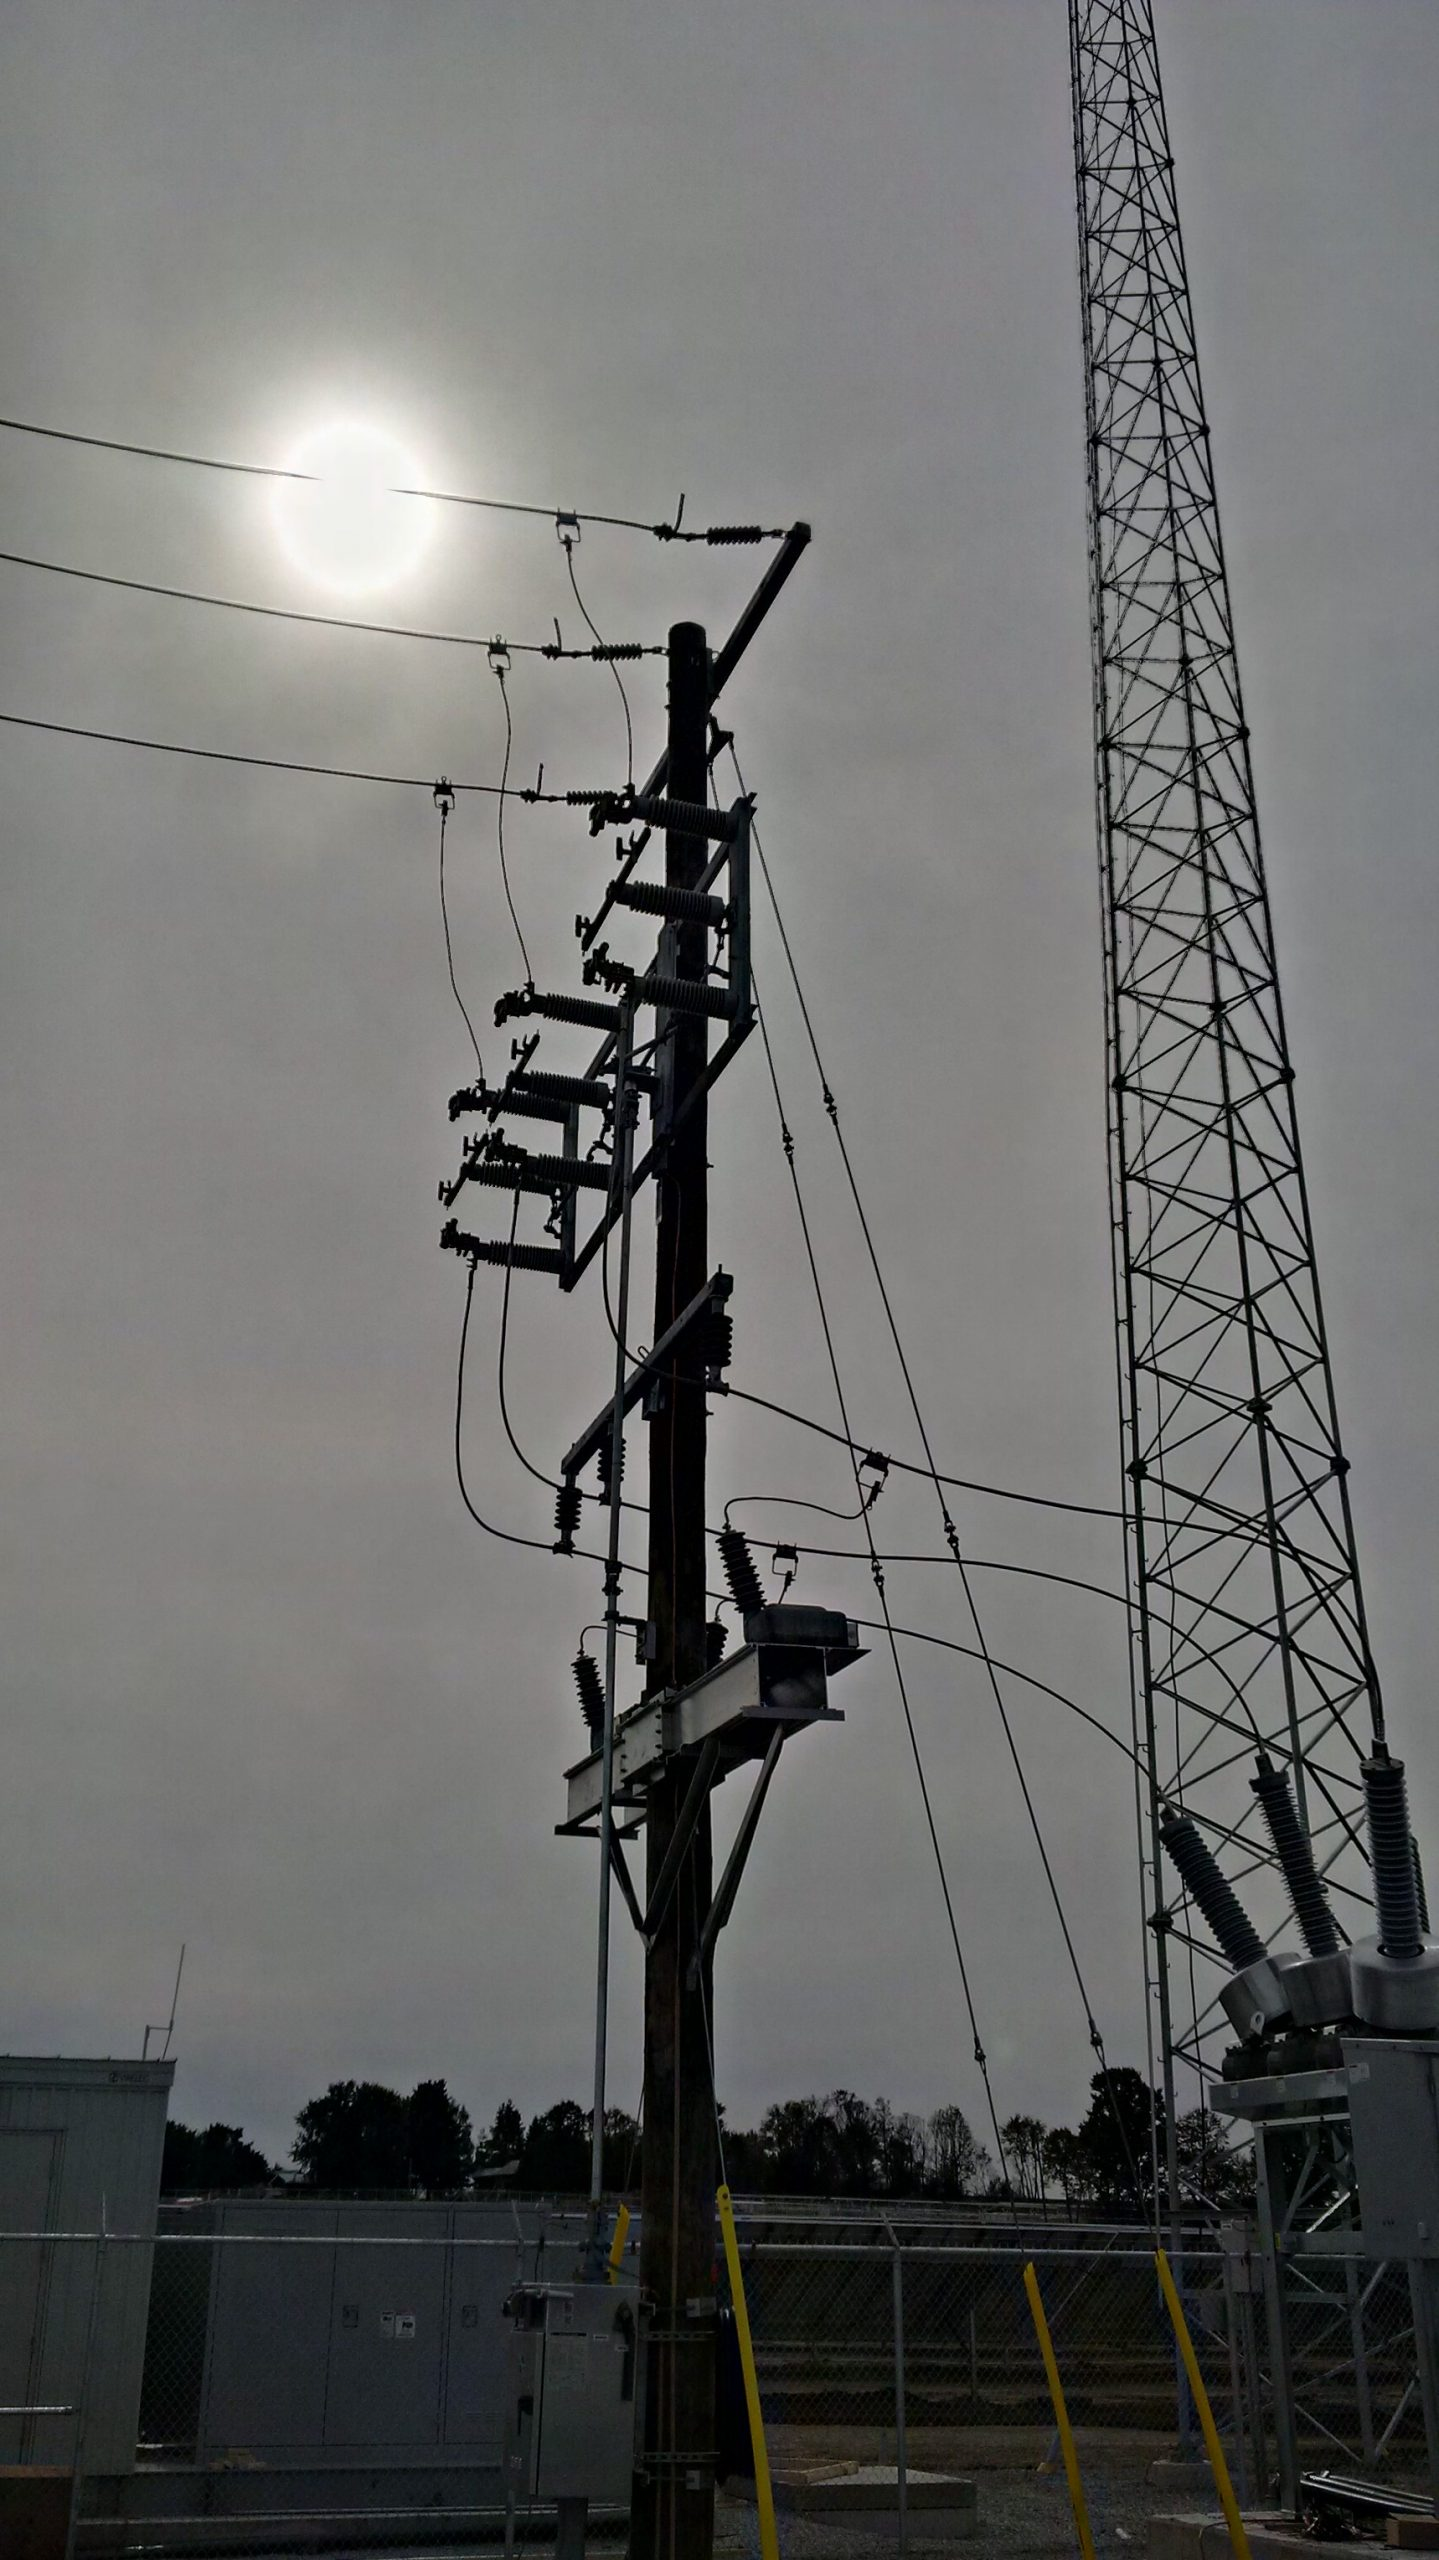 Communication Tower, main circuit breaker, line switches on hydro pole. grey sky with sun